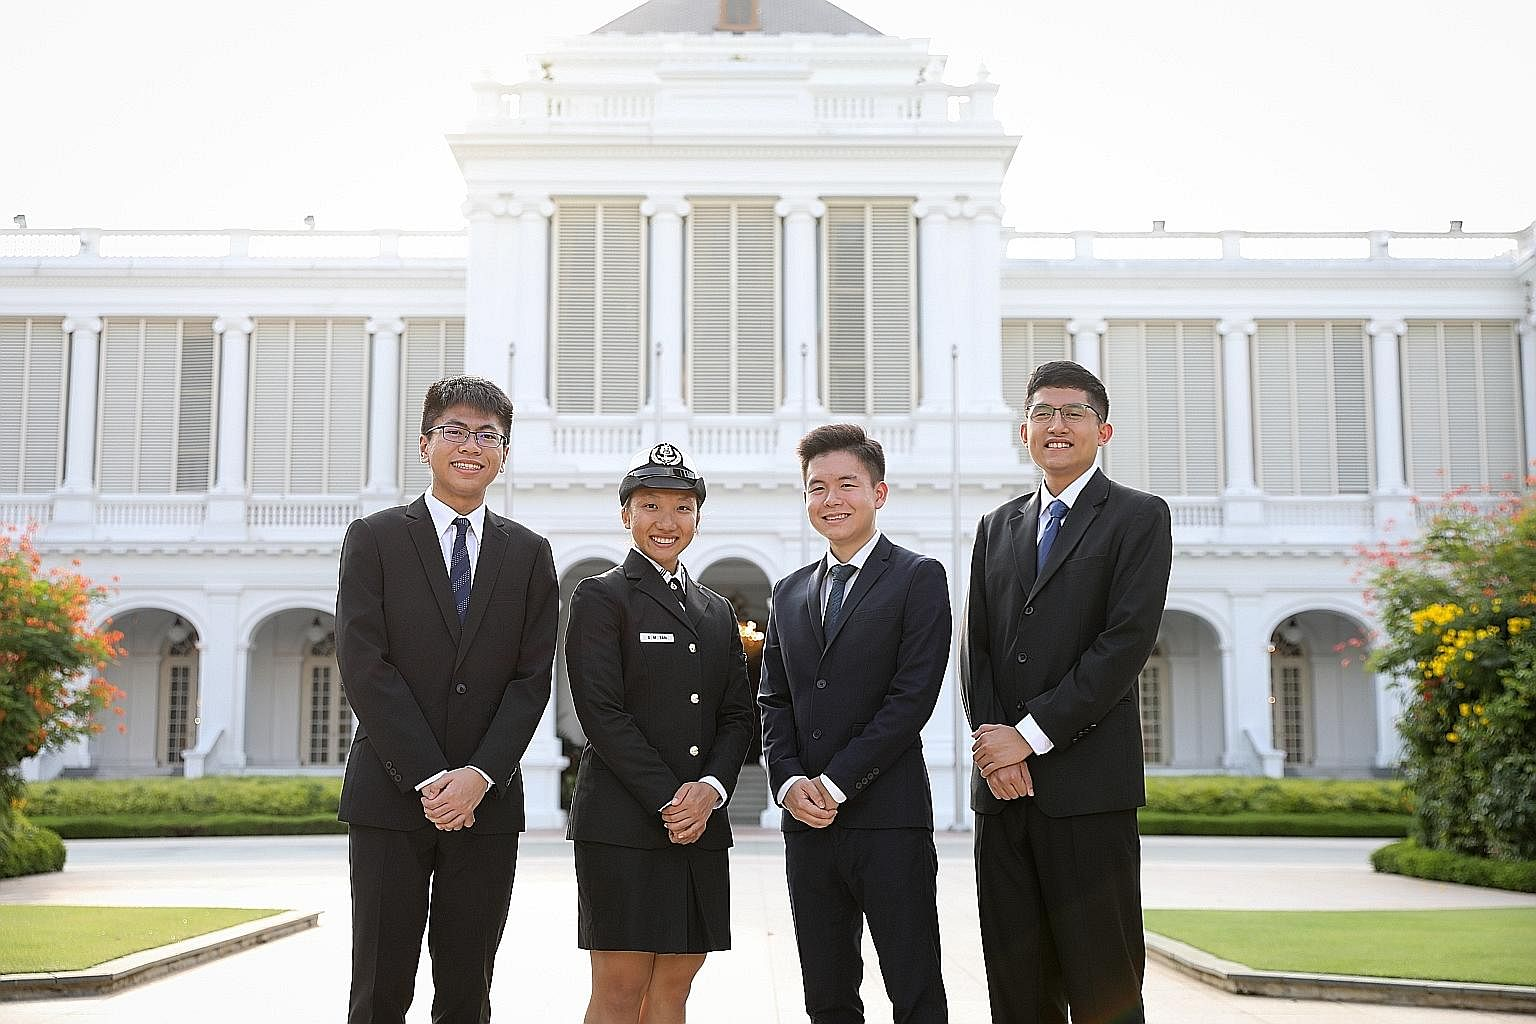 Four 19-year-olds received the President's Scholarship at the Istana yesterday. Ms Allison Tan Sue Min is a dancer from the School of the Arts who has joined the navy, while Mr Siow Mein Yeak, Yue (third from left), from Victoria Junior College, will